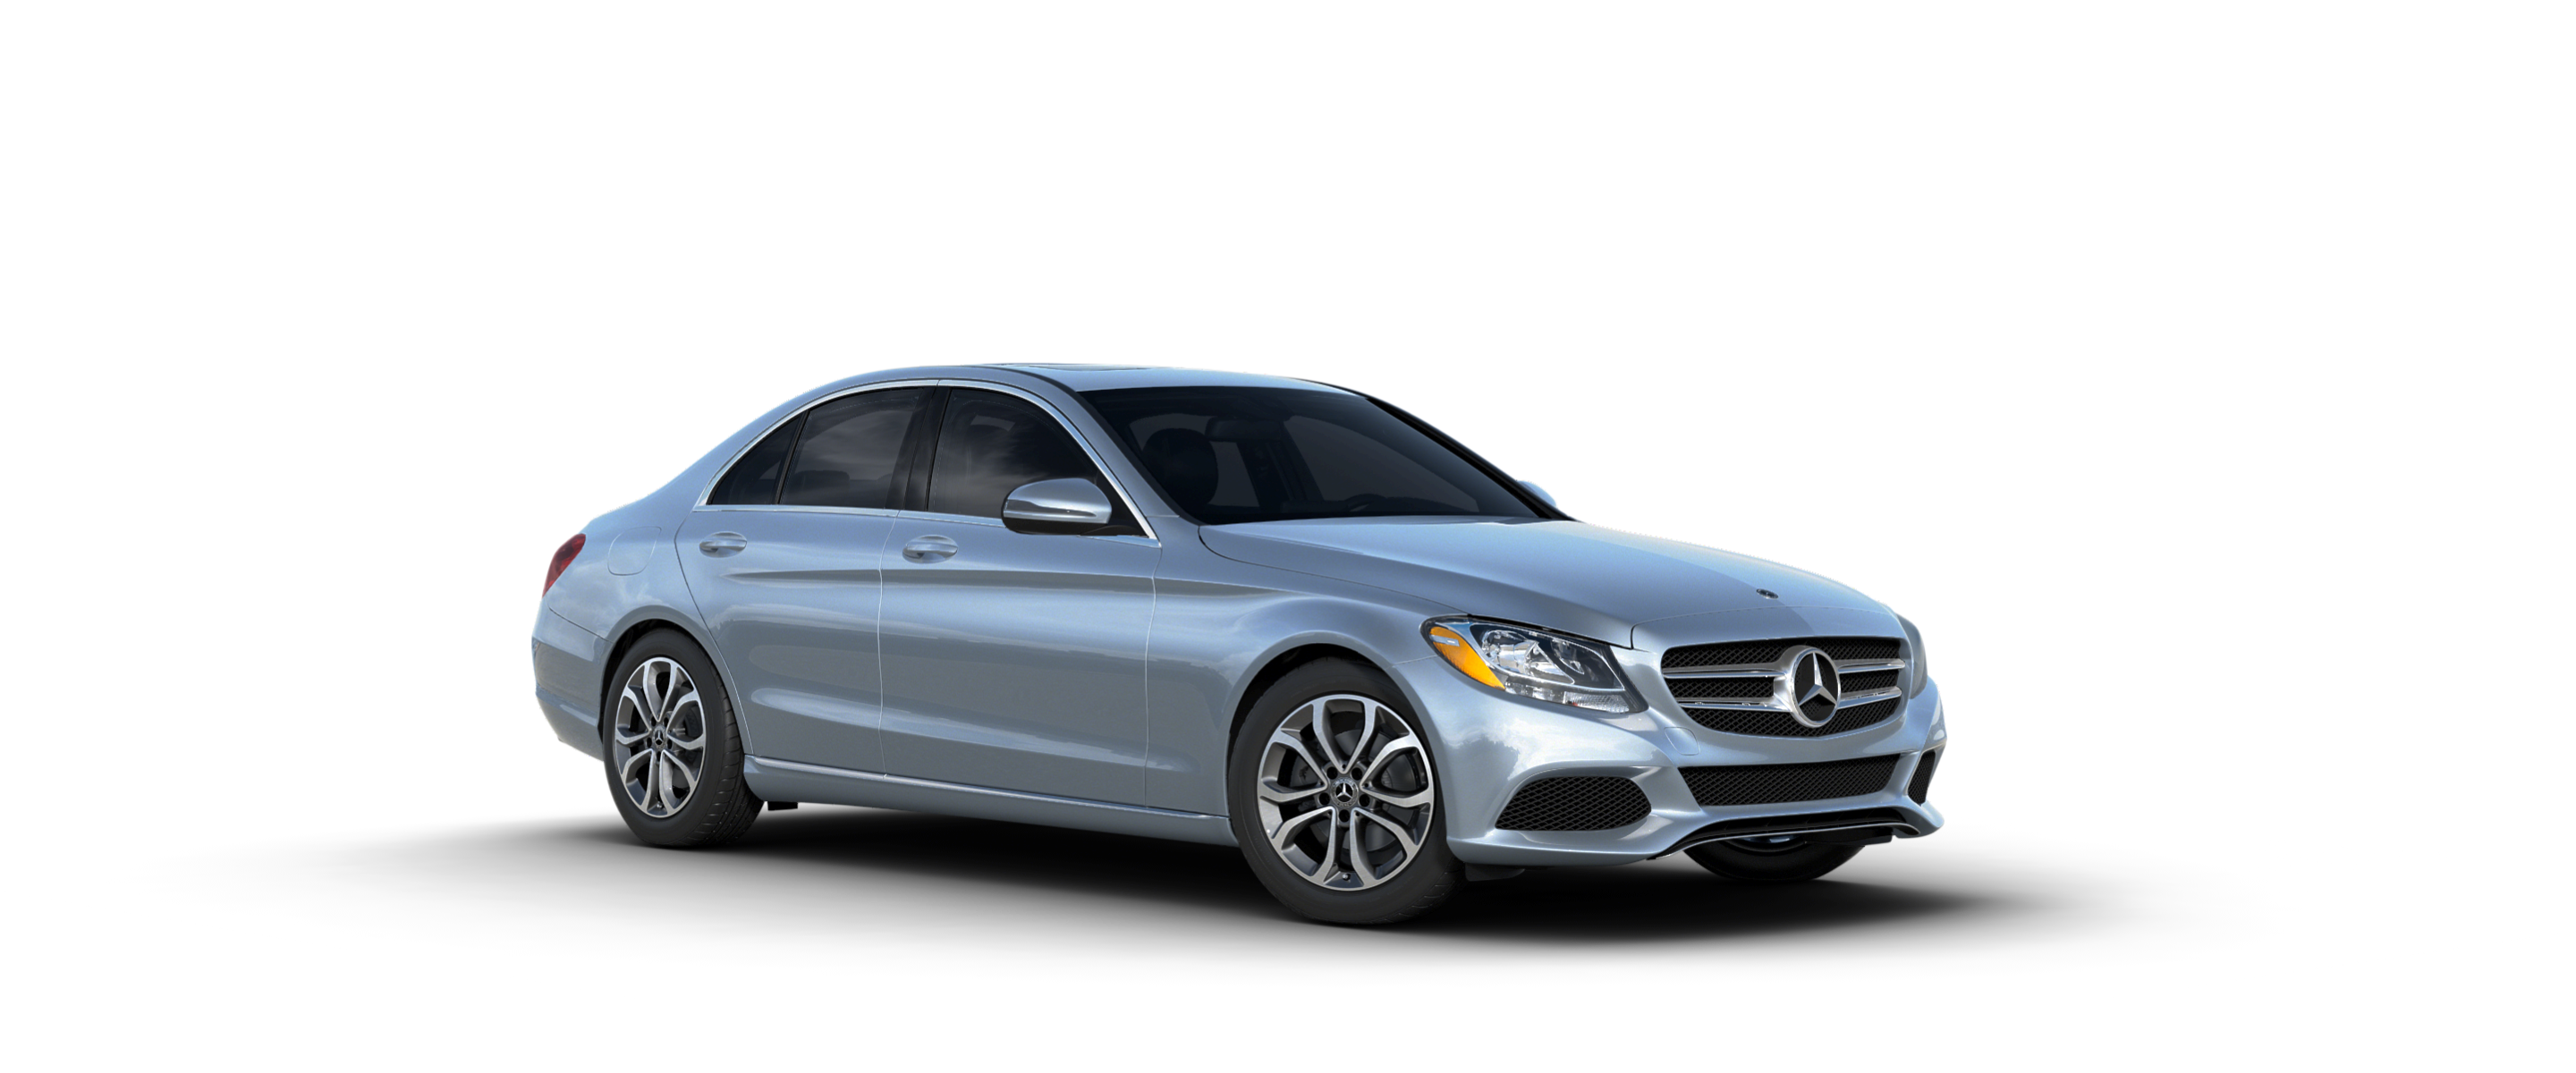 color options for the 2018 mercedes benz c class sedan. Black Bedroom Furniture Sets. Home Design Ideas